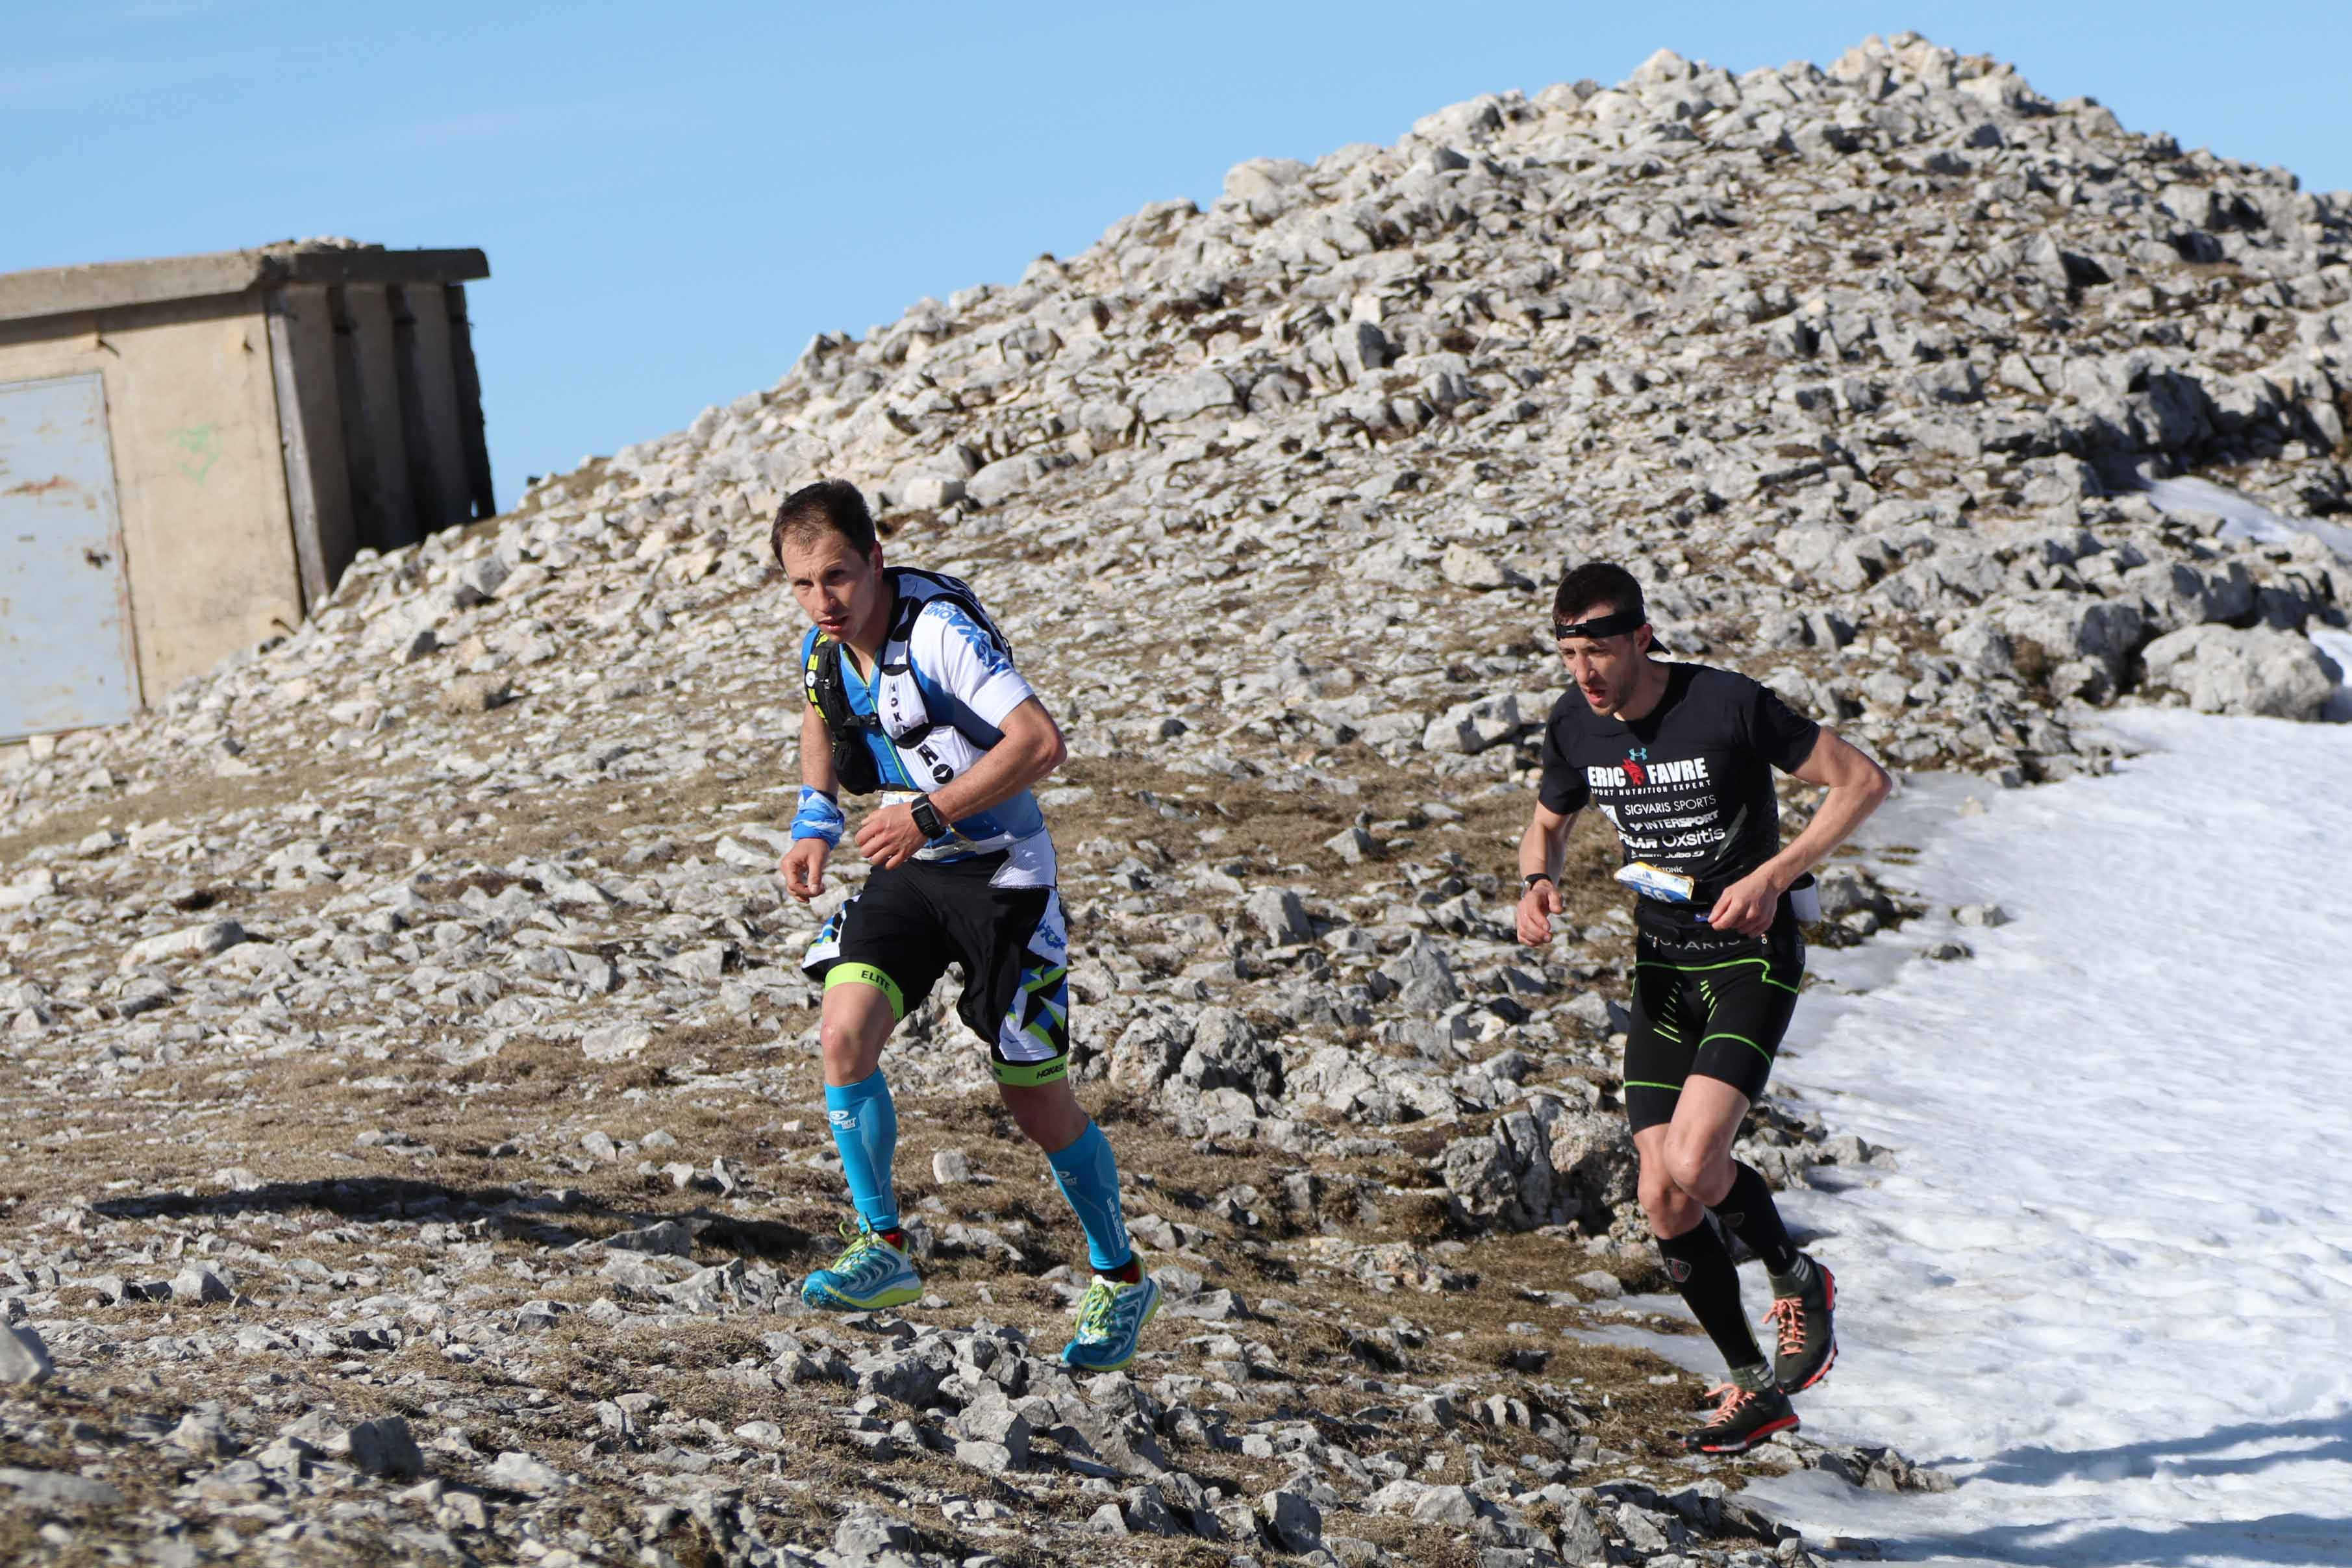 4 Nicolas Martin et Romain Maillard photo Robert Goin - RESULTATS ET COMMENTAIRES DU TRAIL DU VENTOUX 19-03-2017 (par Robert Goin)